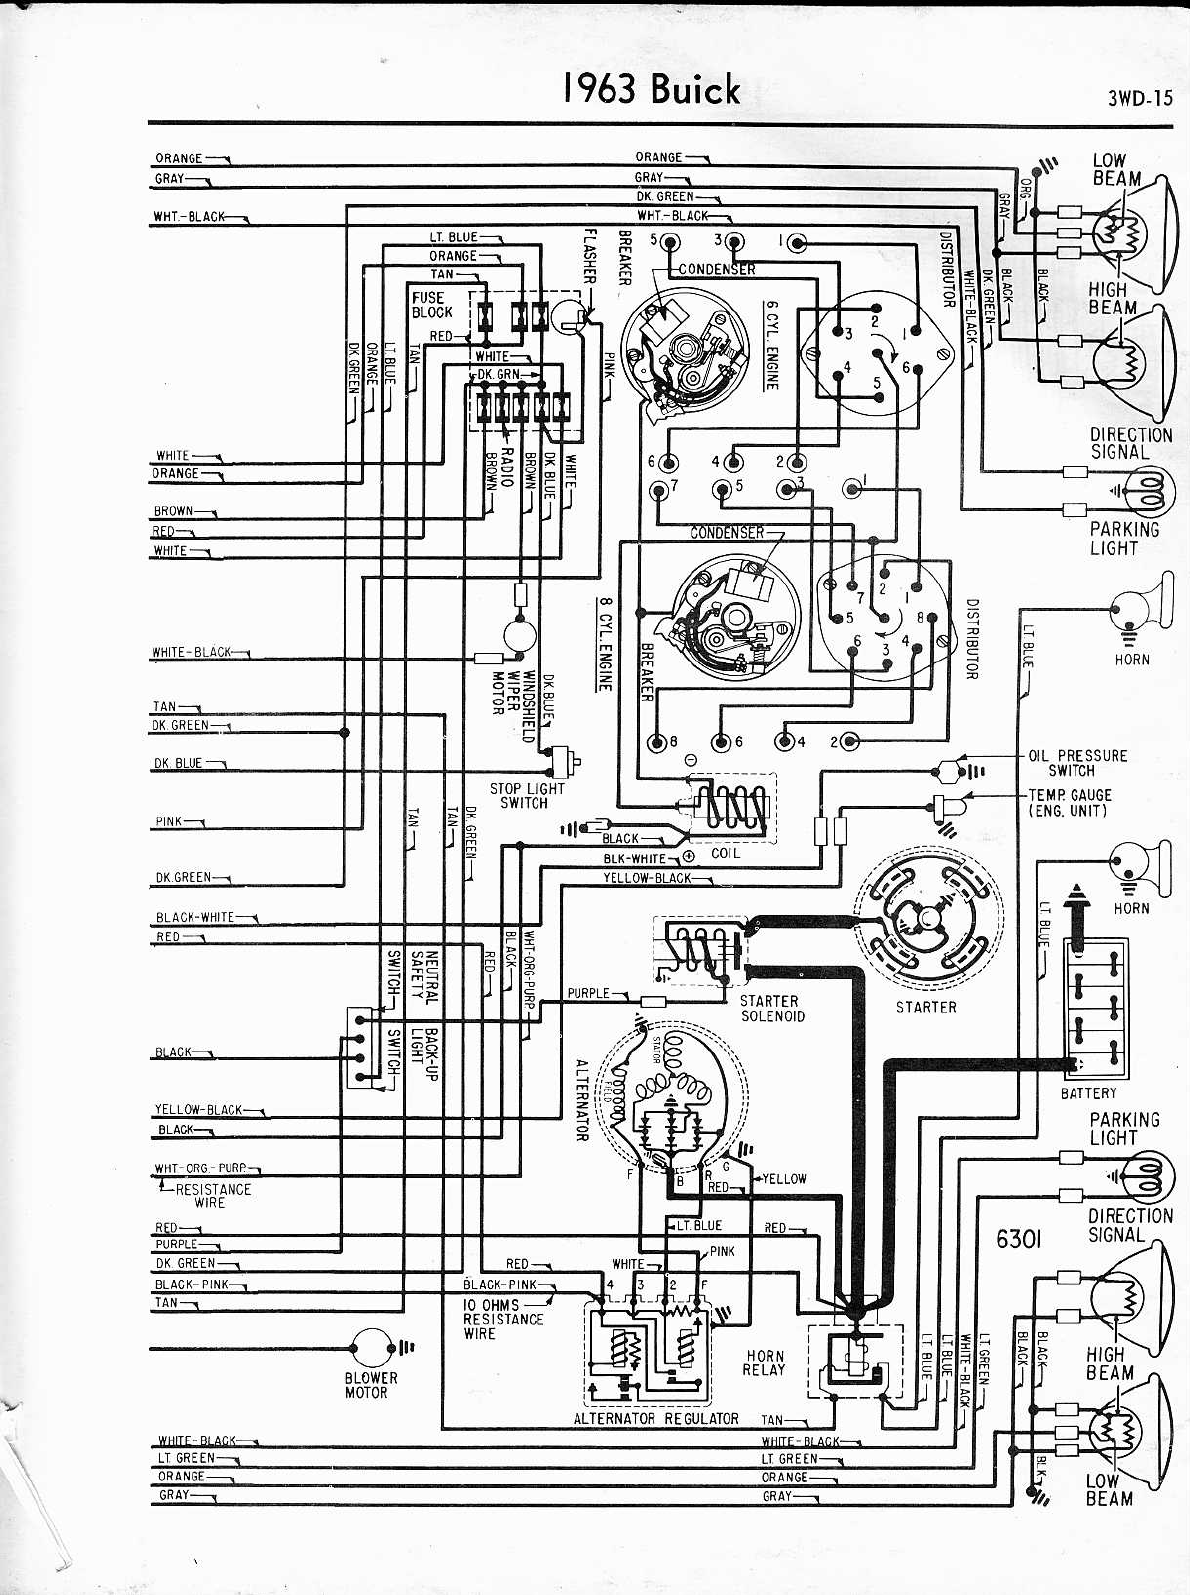 1971 buick gs wiring diagram smart wiring diagrams \u2022 1970 buick 455 heads 1971 buick gs wiring diagram electrical work wiring diagram u2022 rh aglabs co 1967 buick gs 1971 buick skylark wiring diagram